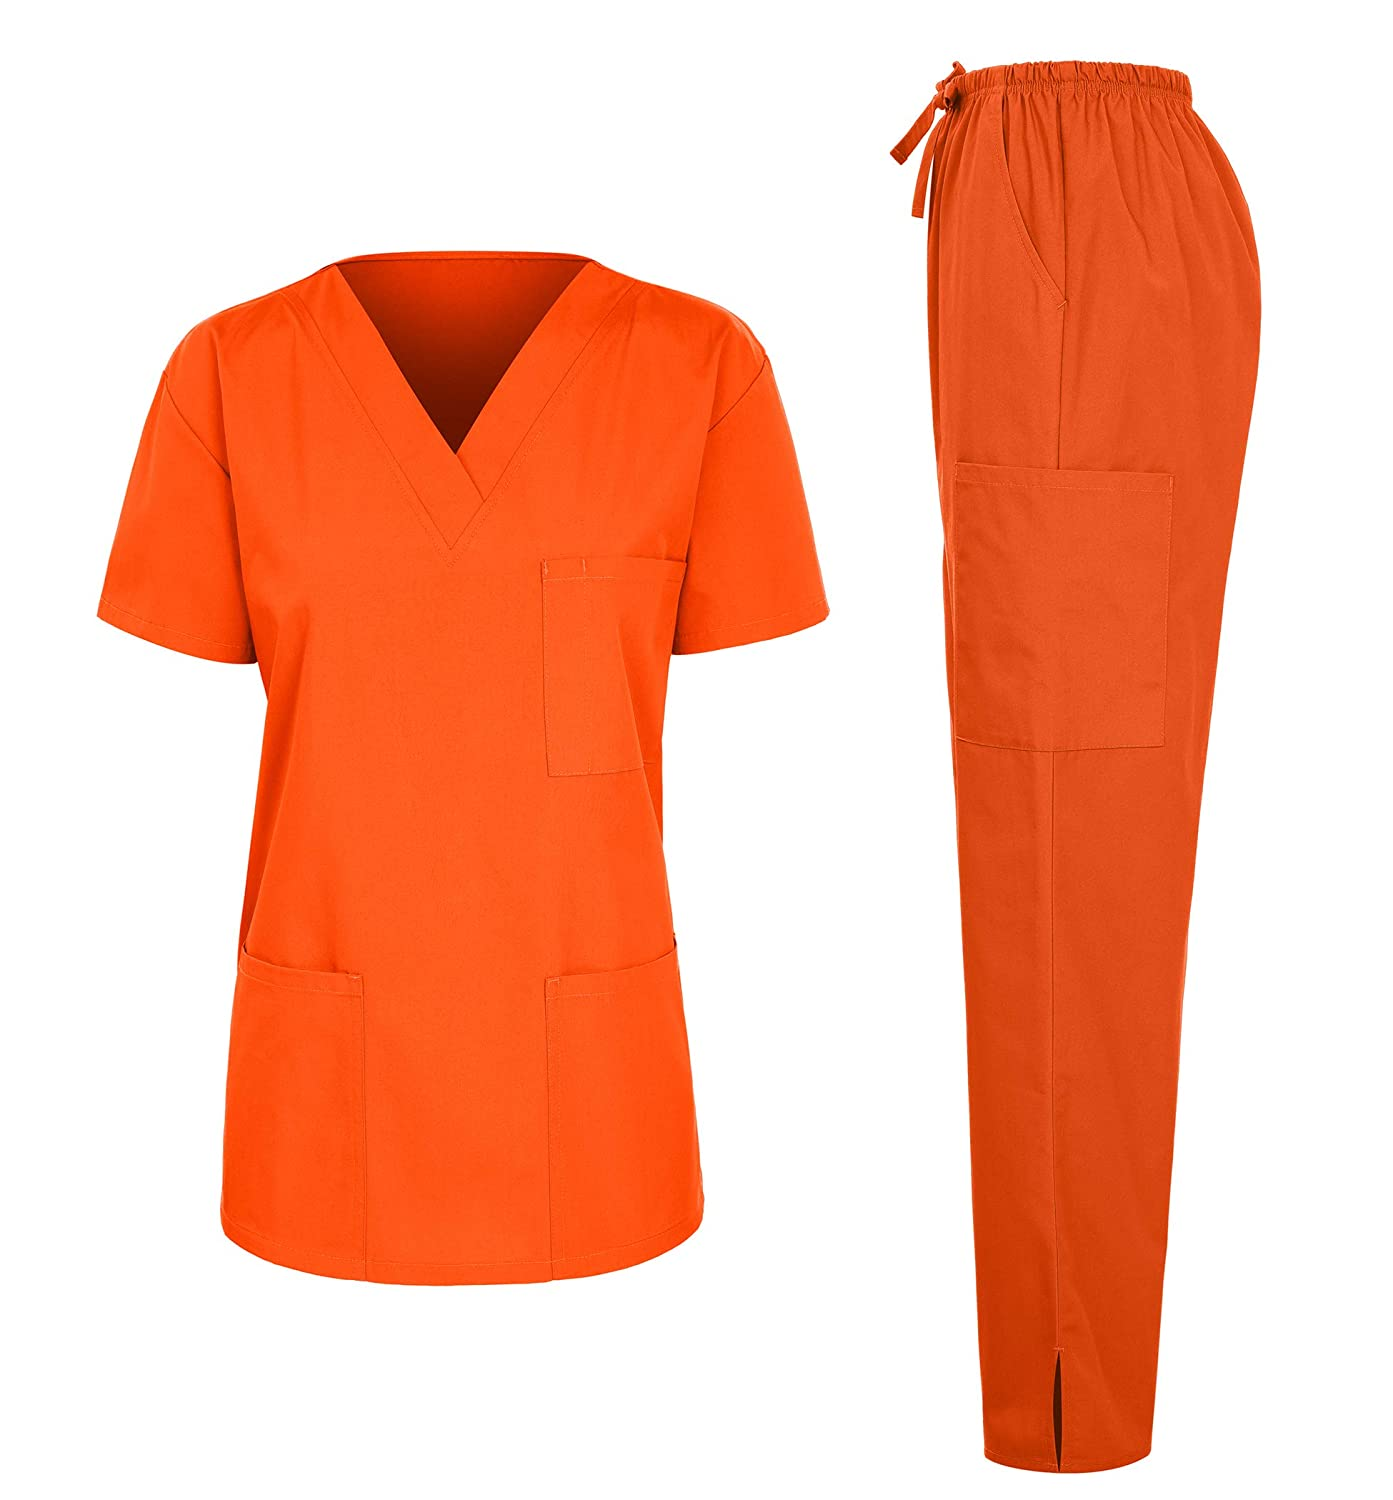 orange iliad USA Womens Scrub Sets Uniform Medical Scrubs Top and Pants